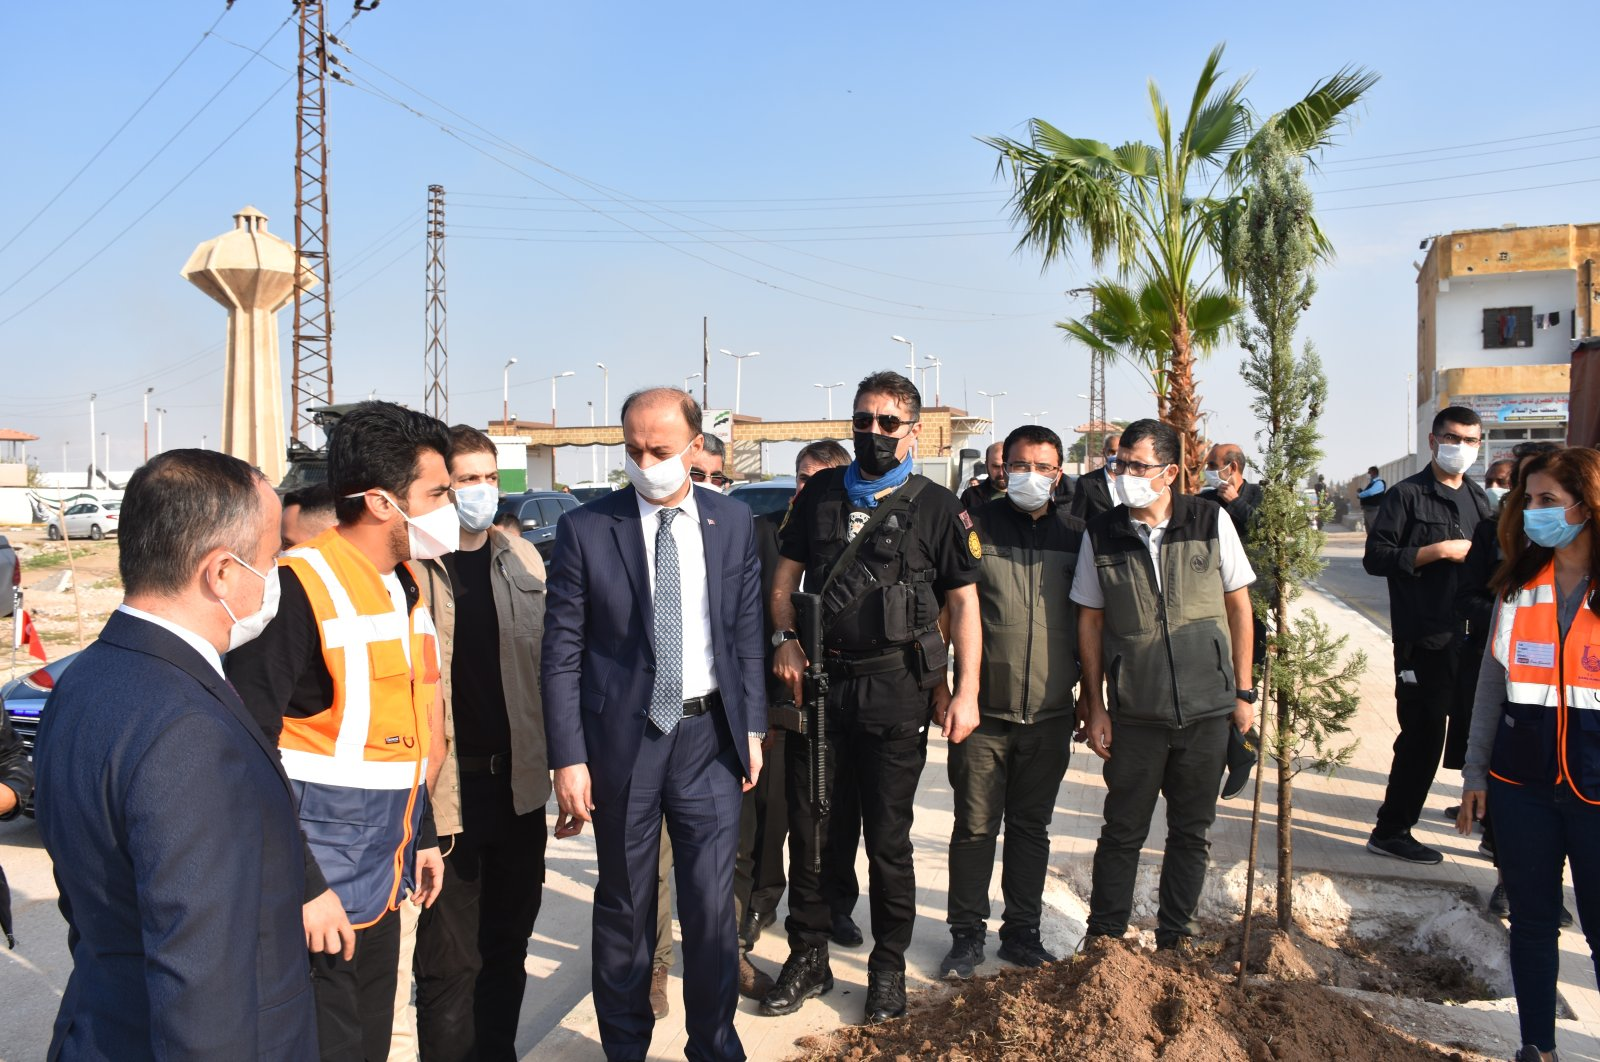 The Şanlıurfa governorate's Syria Support and Coordination Center planted 600 trees in Tal Abyad and Ras al-Ain, northern Syria, Nov. 12, 2020. (AA Photo)